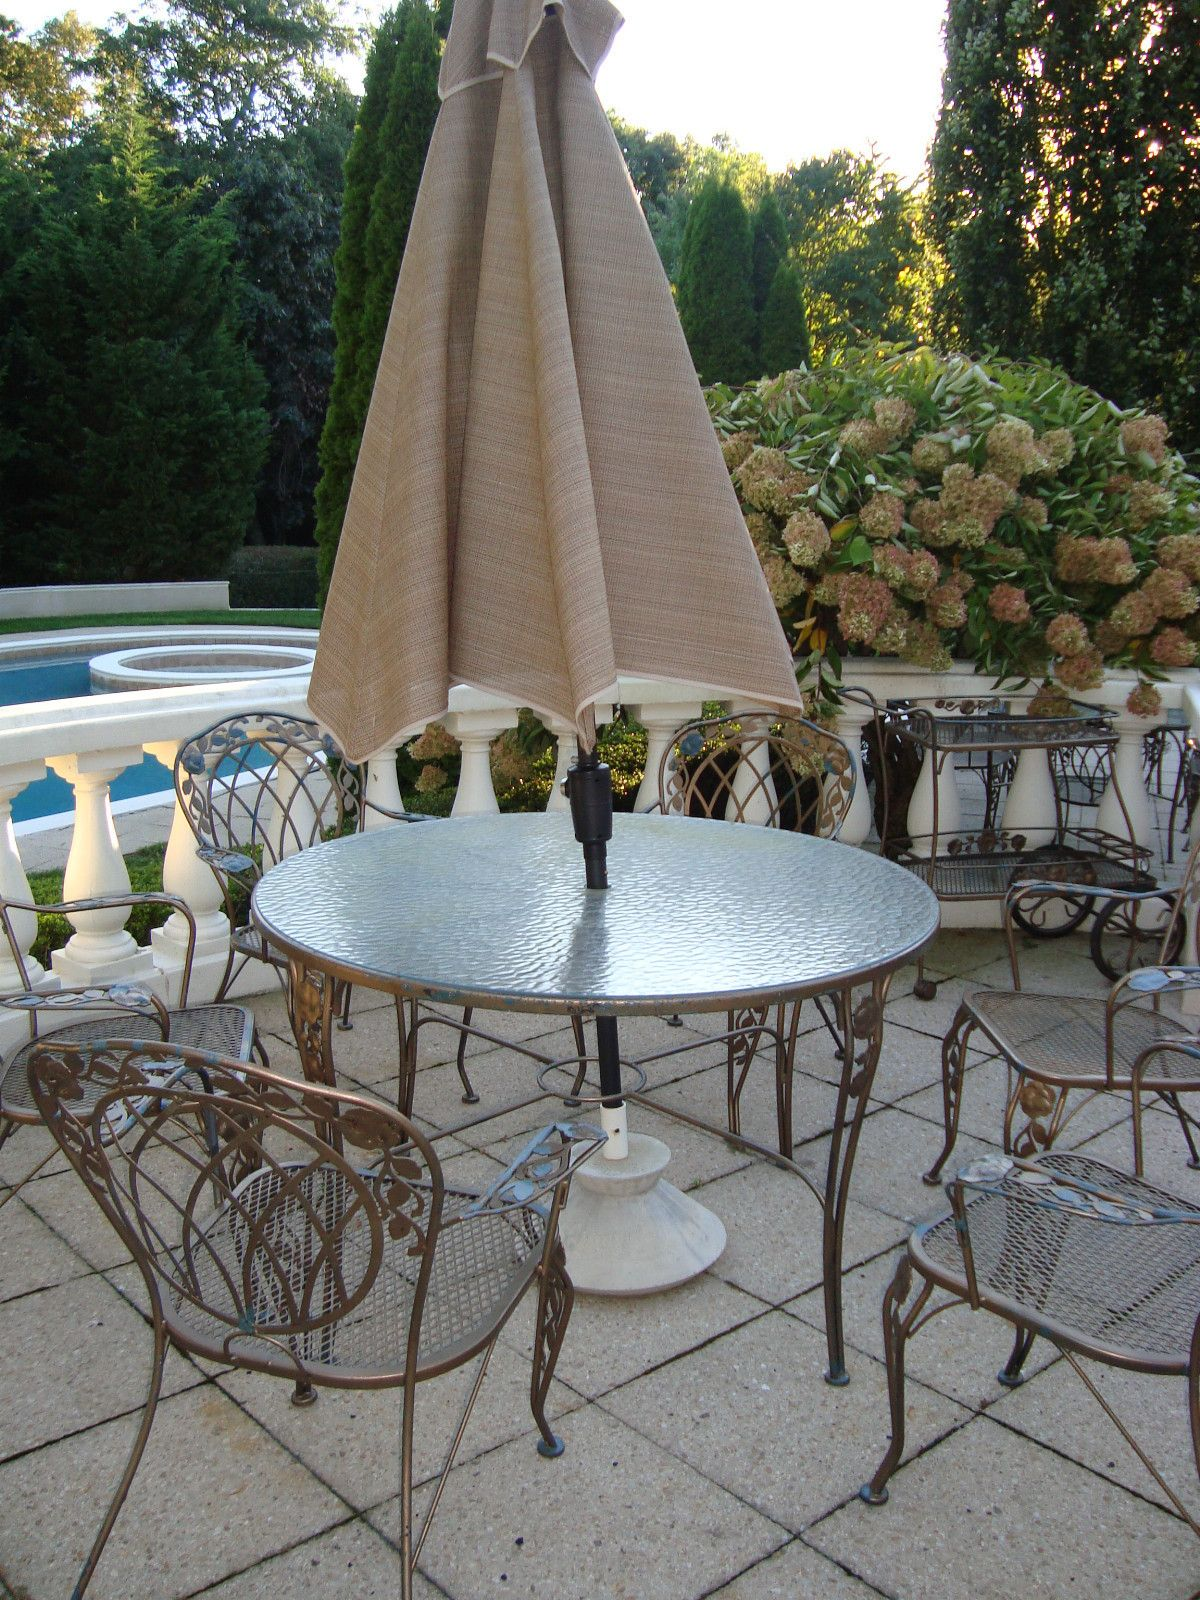 Meadowcraft Wrought Iron Outdoor Furniture Vintage